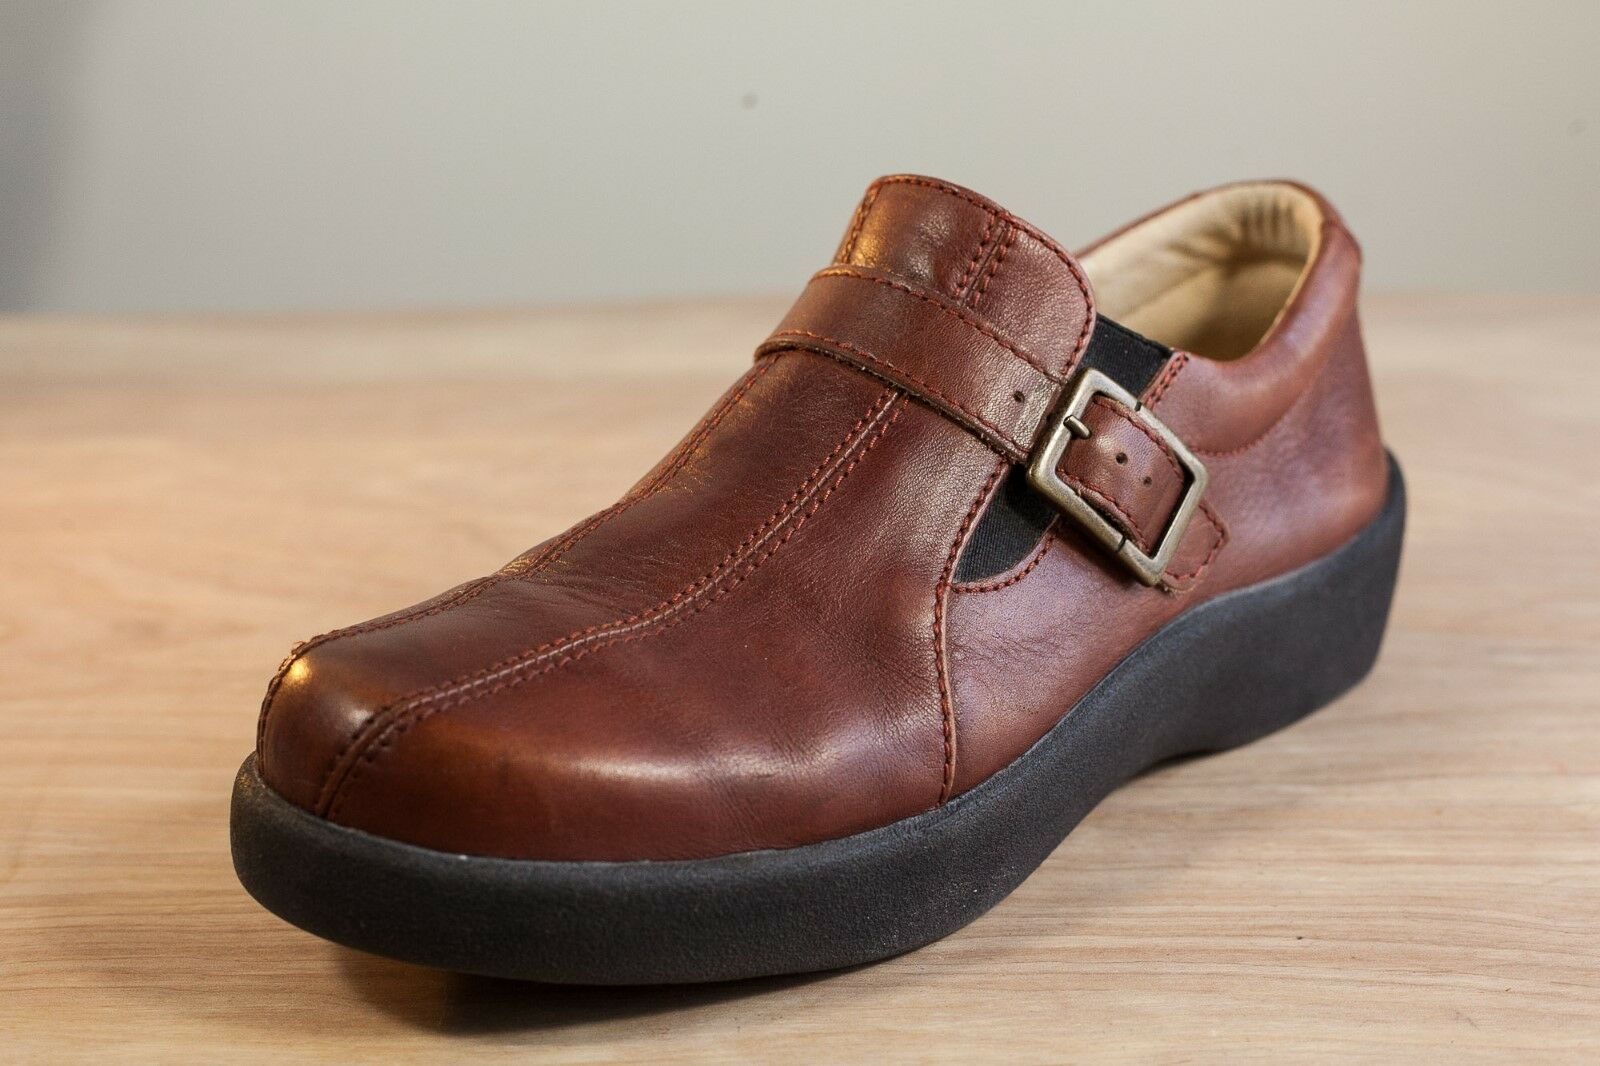 Wolky 8 Brown Leather Men's Walking shoes